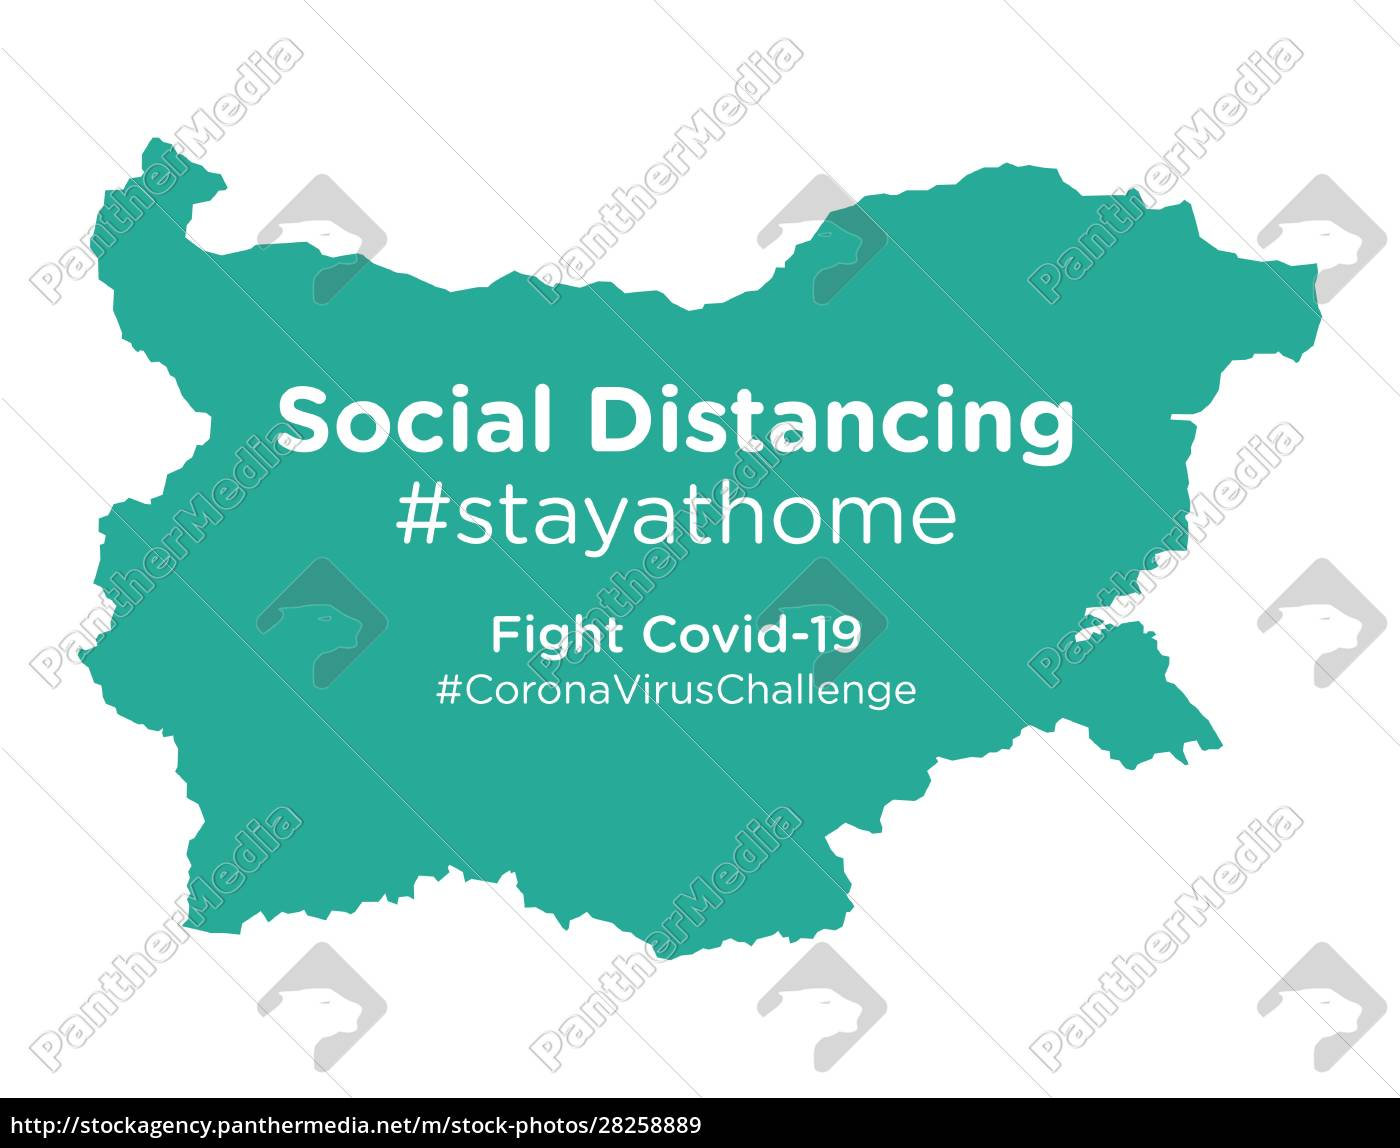 bulgaria, map, with, social, distancing, #stayathome - 28258889